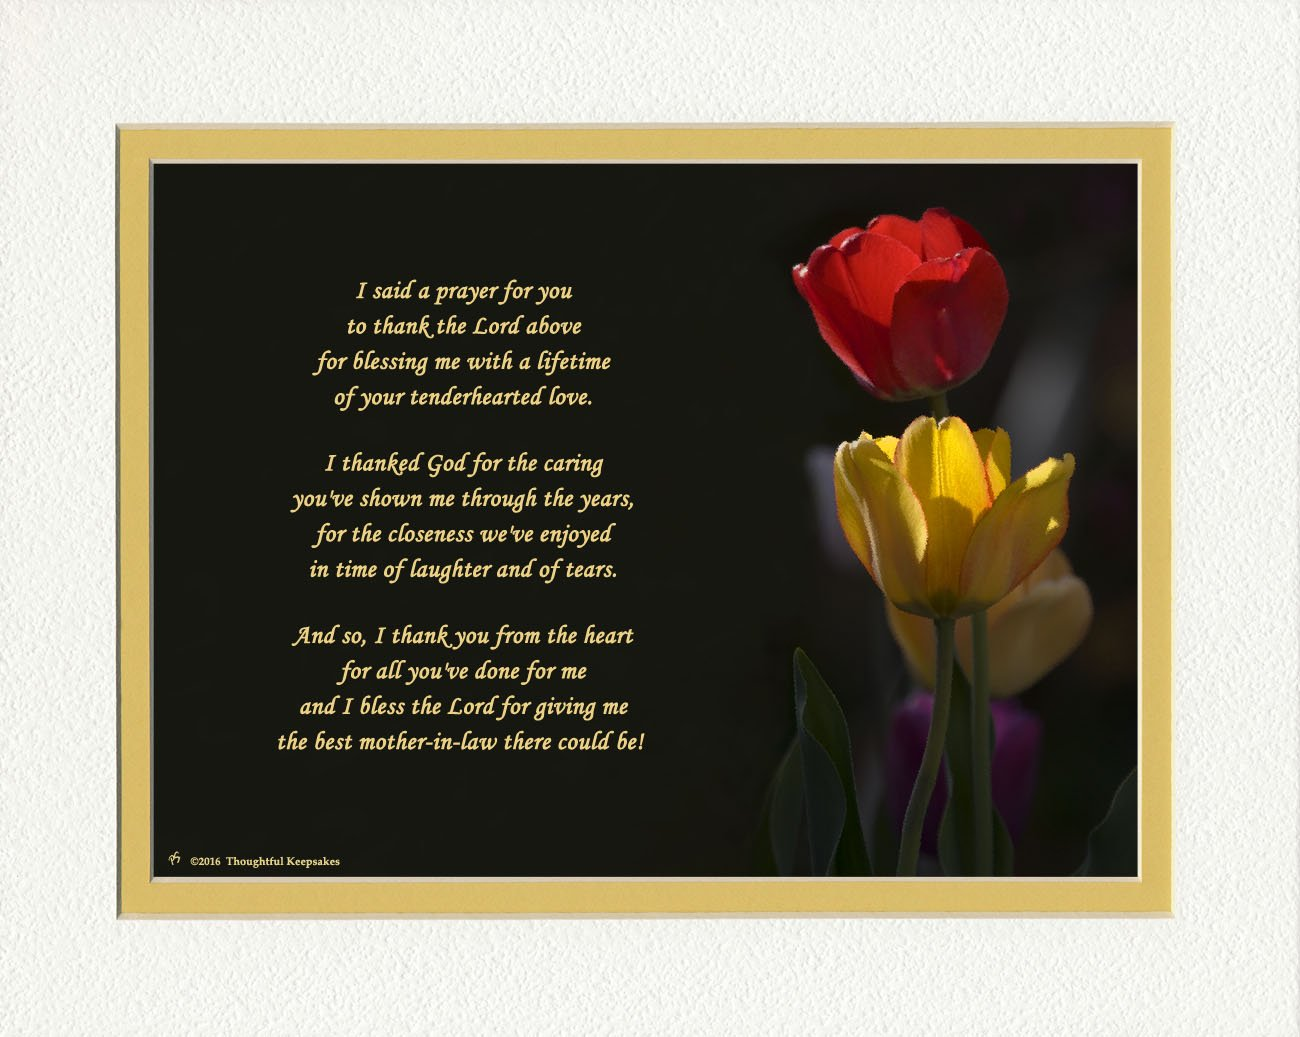 Gift for Mother in Law with ''Thank You Prayer for Best Mother-in-law'' Poem. Tulips Photo, 8x10 Double Matted. Special Mother-in-law Gifts for Birthday, Christmas, Wedding, Mother's Day Gift